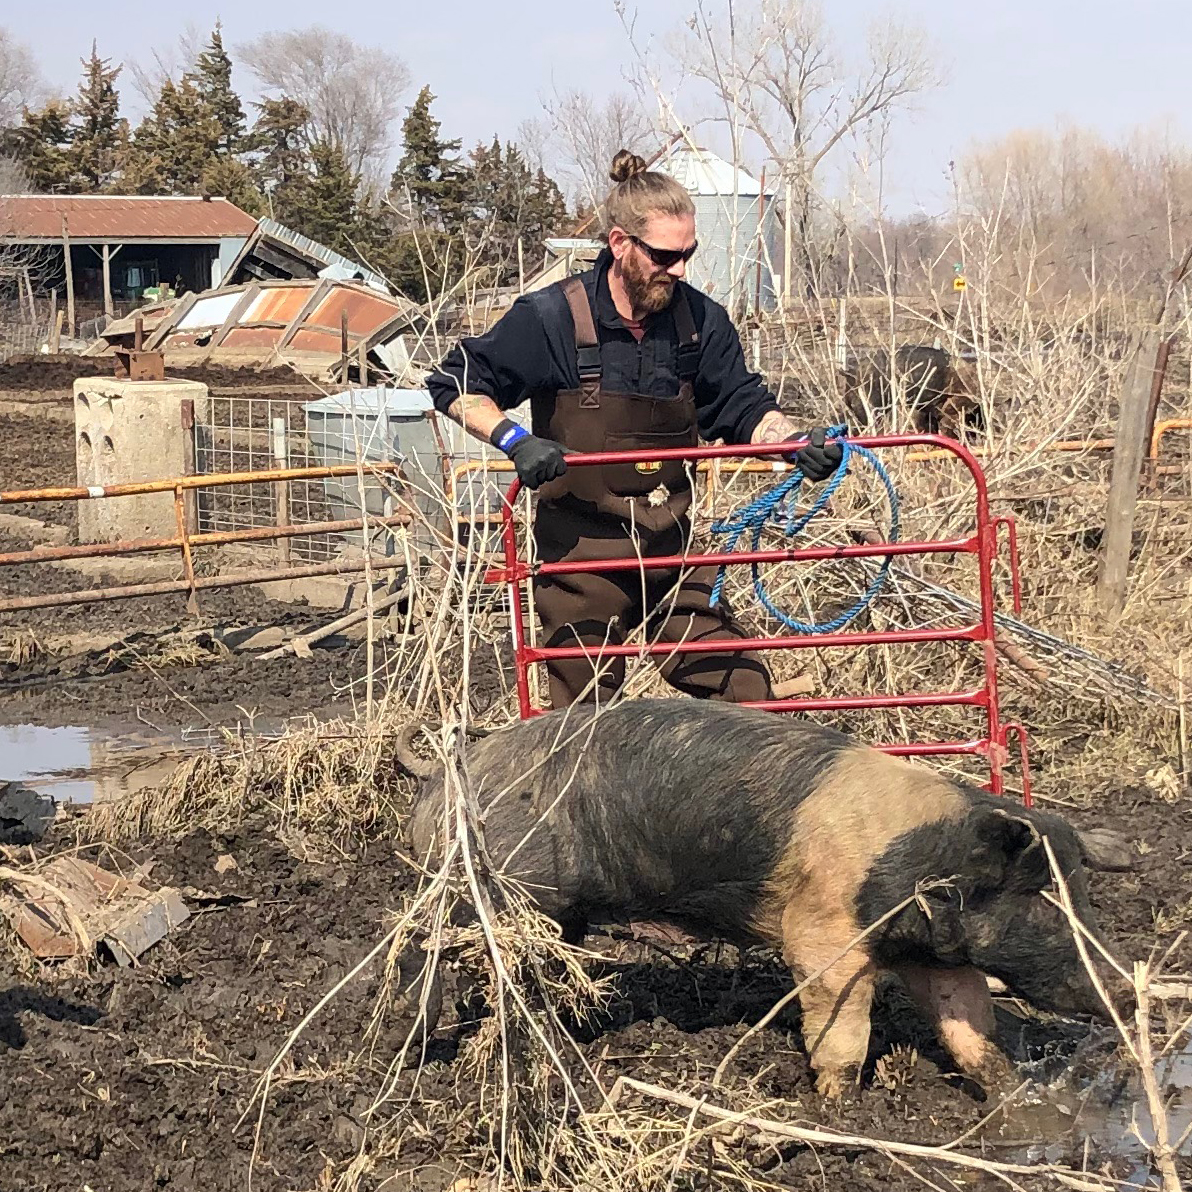 Co-founder, Jered Camp, assists with the rescue of a pig named Love during the floods in Nebraska.